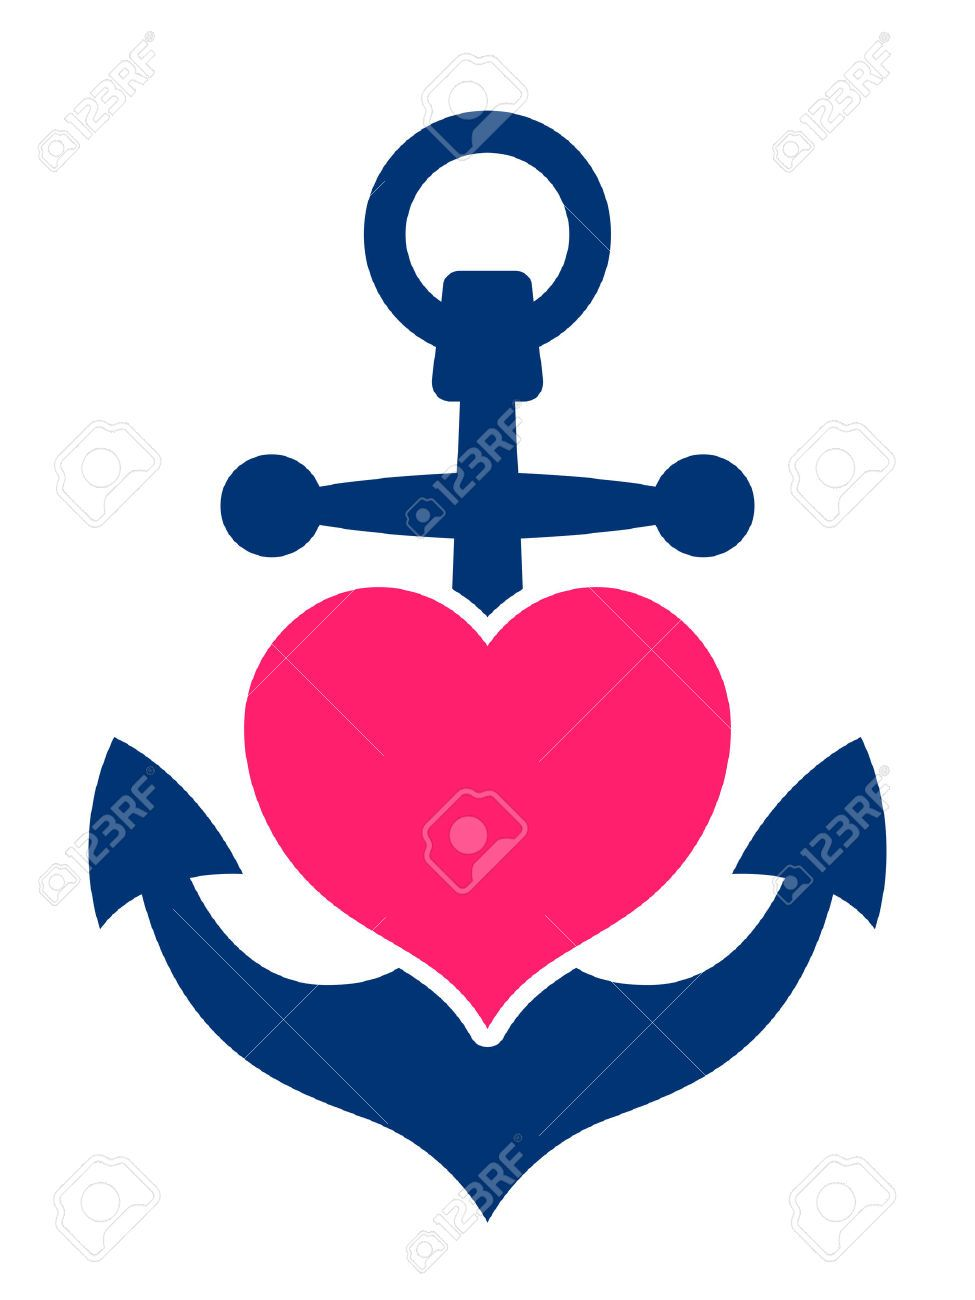 Anchor clipart love. Blue marine or ships